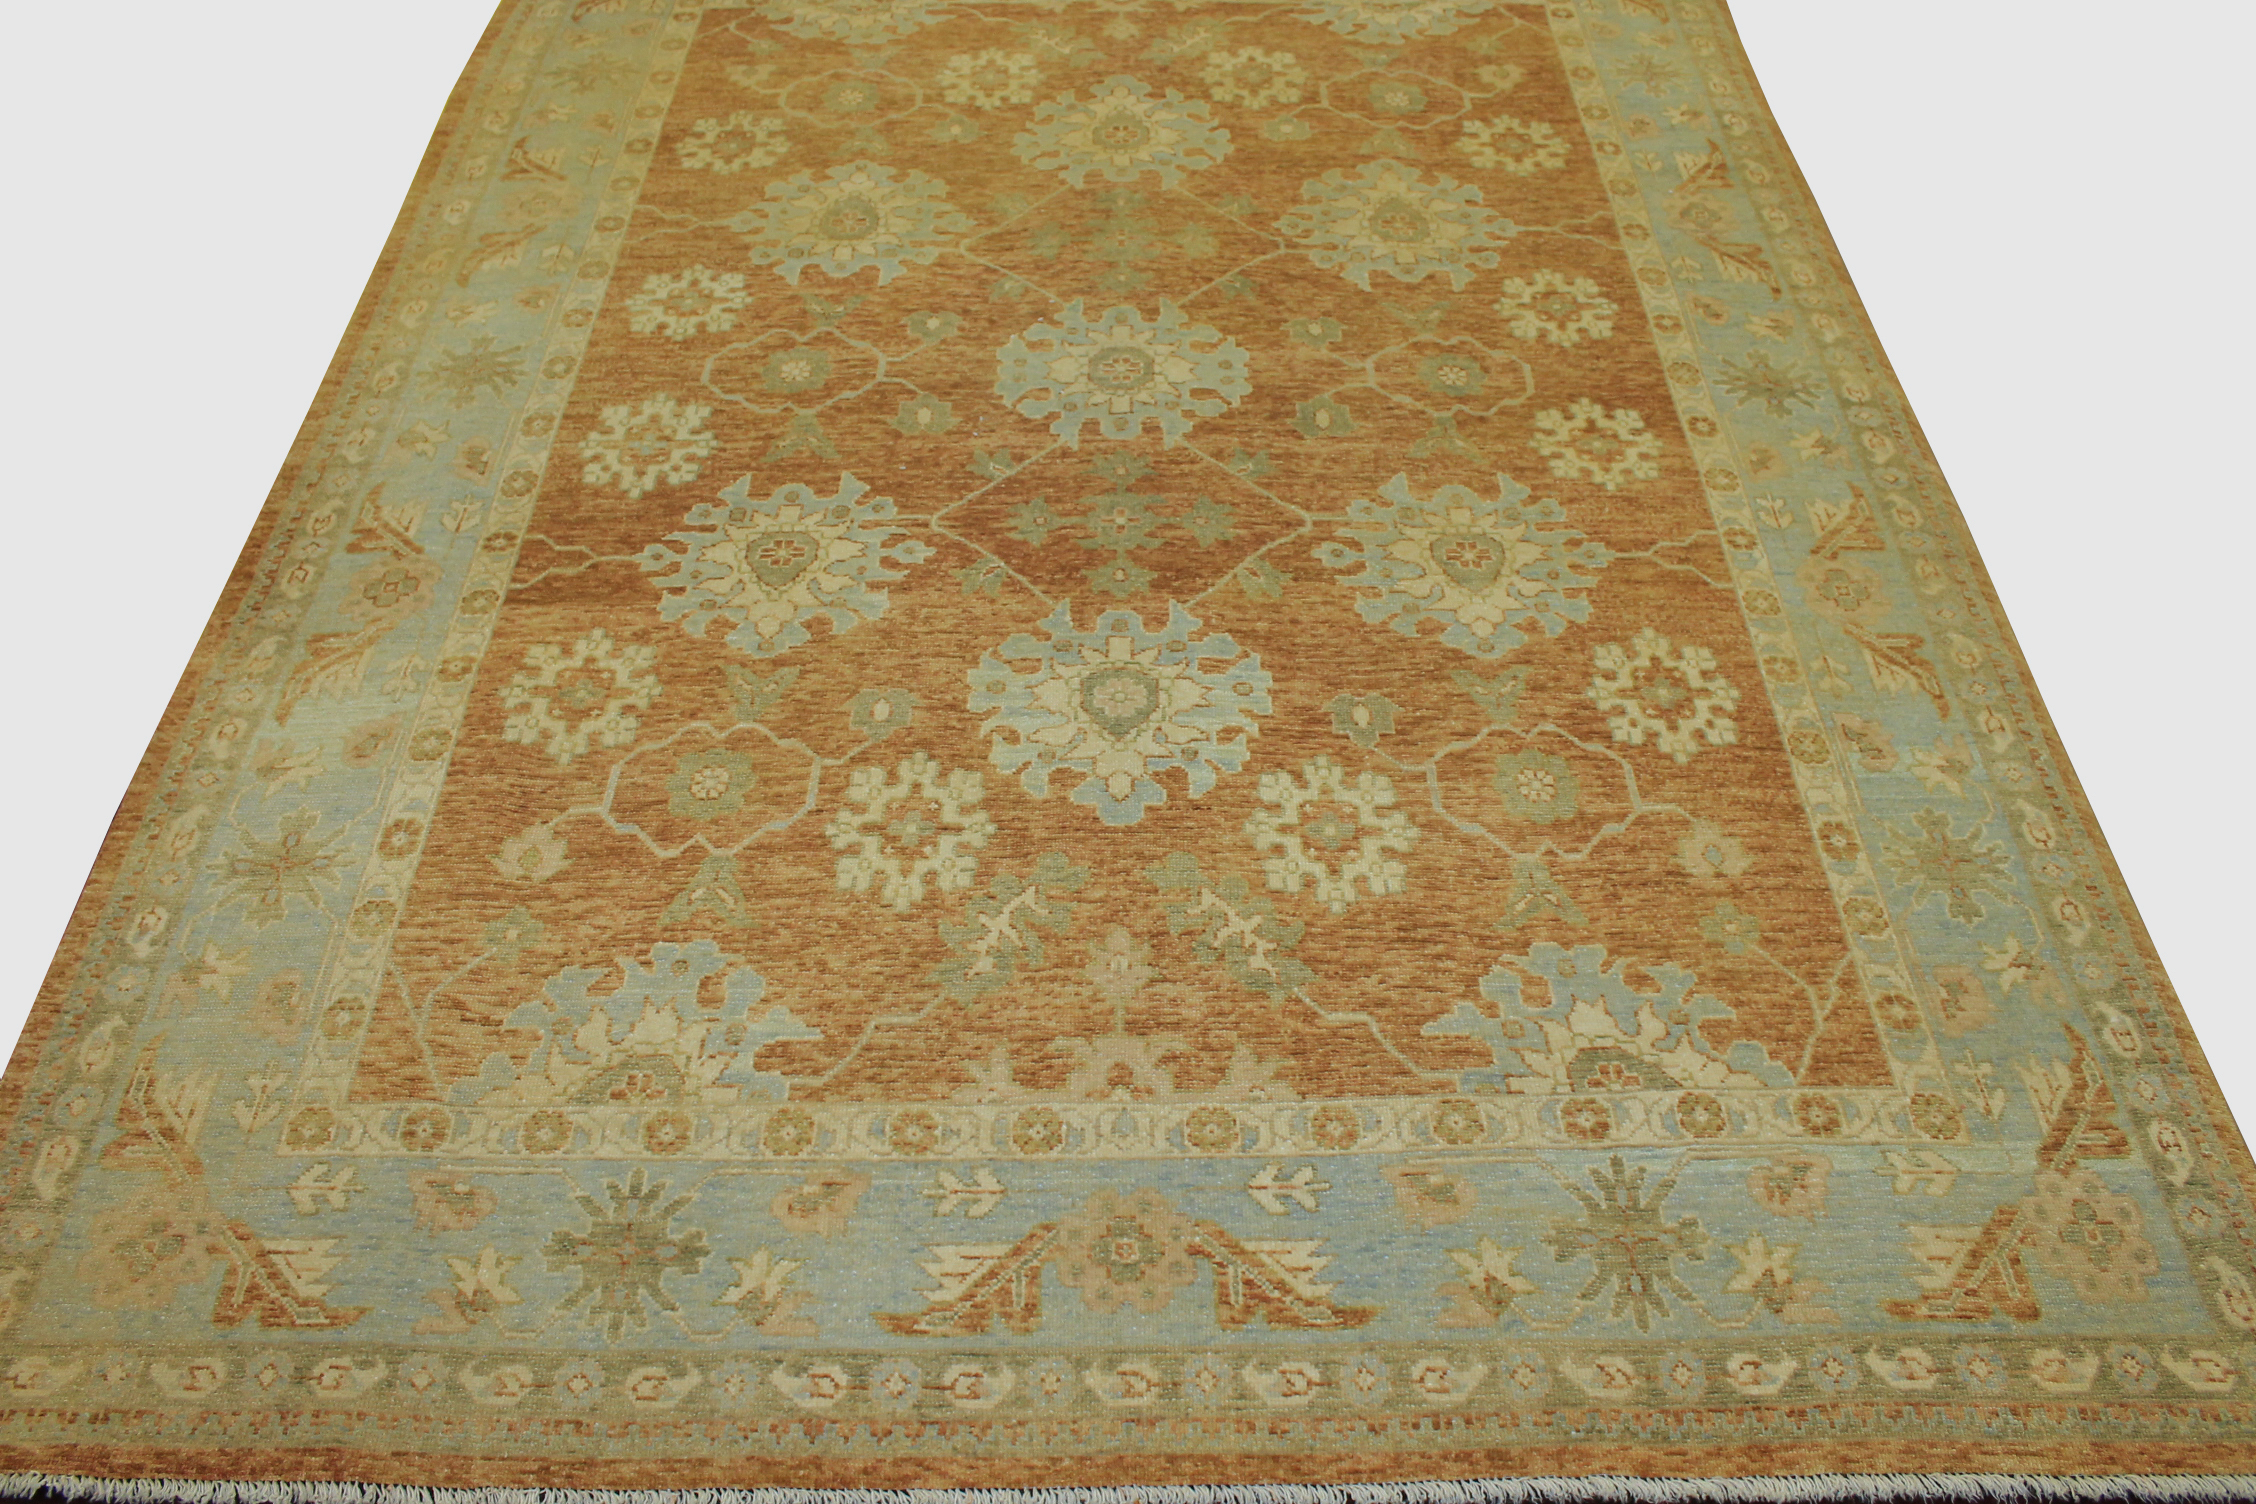 9x12 Oushak Hand Knotted Wool Area Rug - MR13758